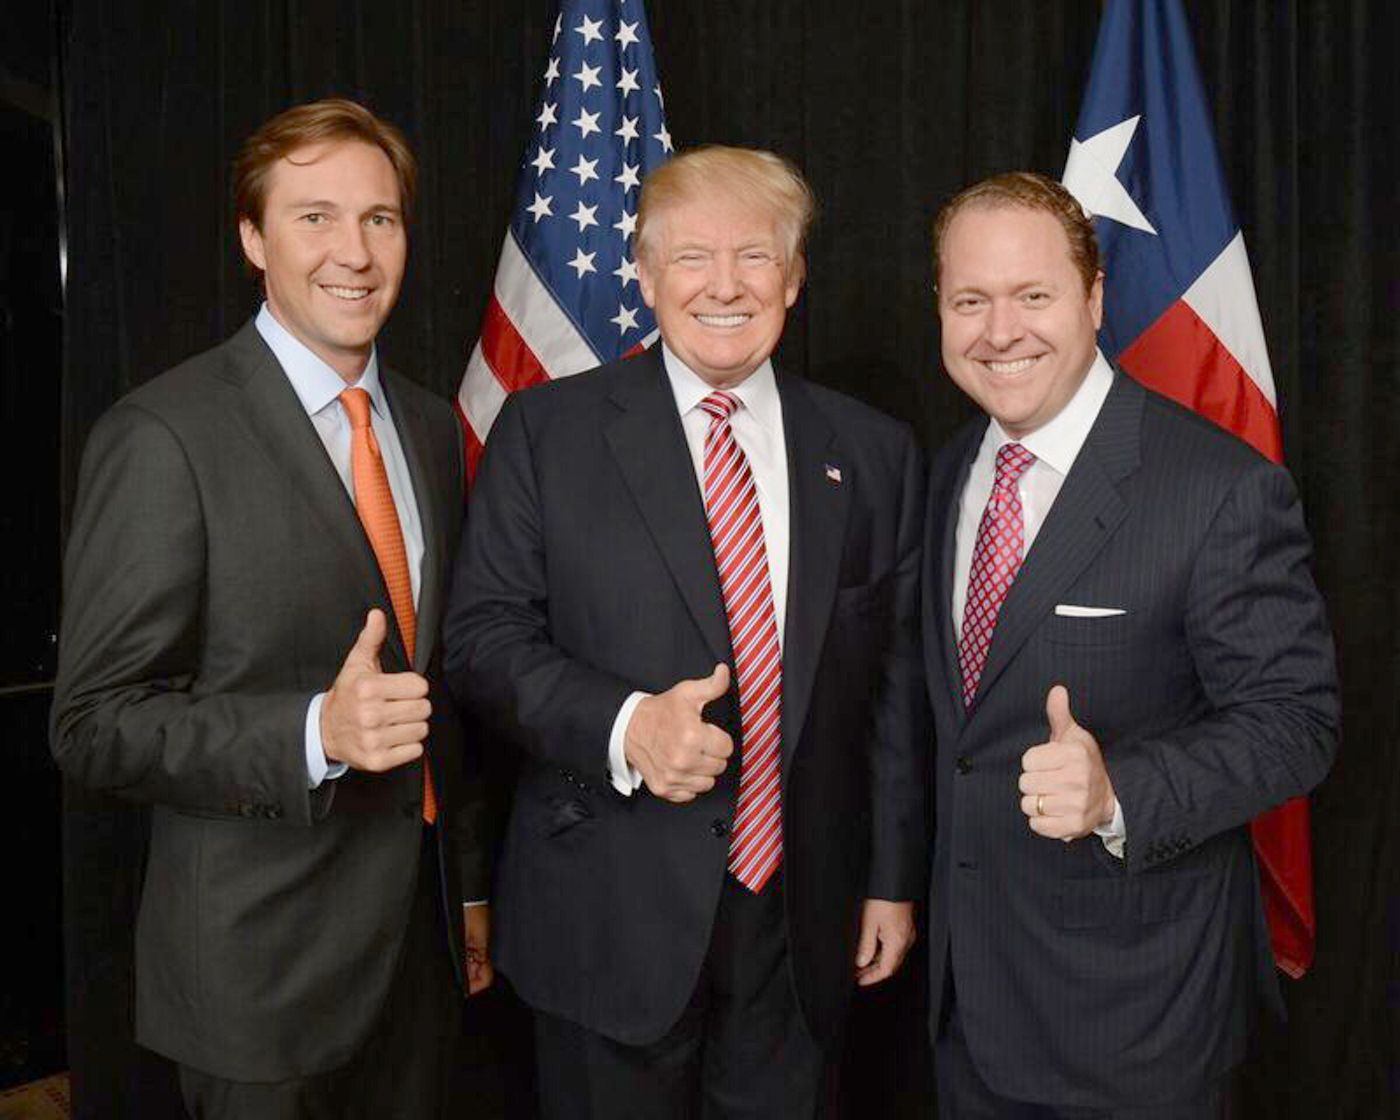 Tommy Hicks Jr., (from left) shown with Donald Trump and Gentry Beach.  Hicks and Beach, two Dallas businessmen were instrumental in raising millions for the campaign and are credited with helping shape the successful upset campaign. Hicks is now looking to buy a conservative news channel.